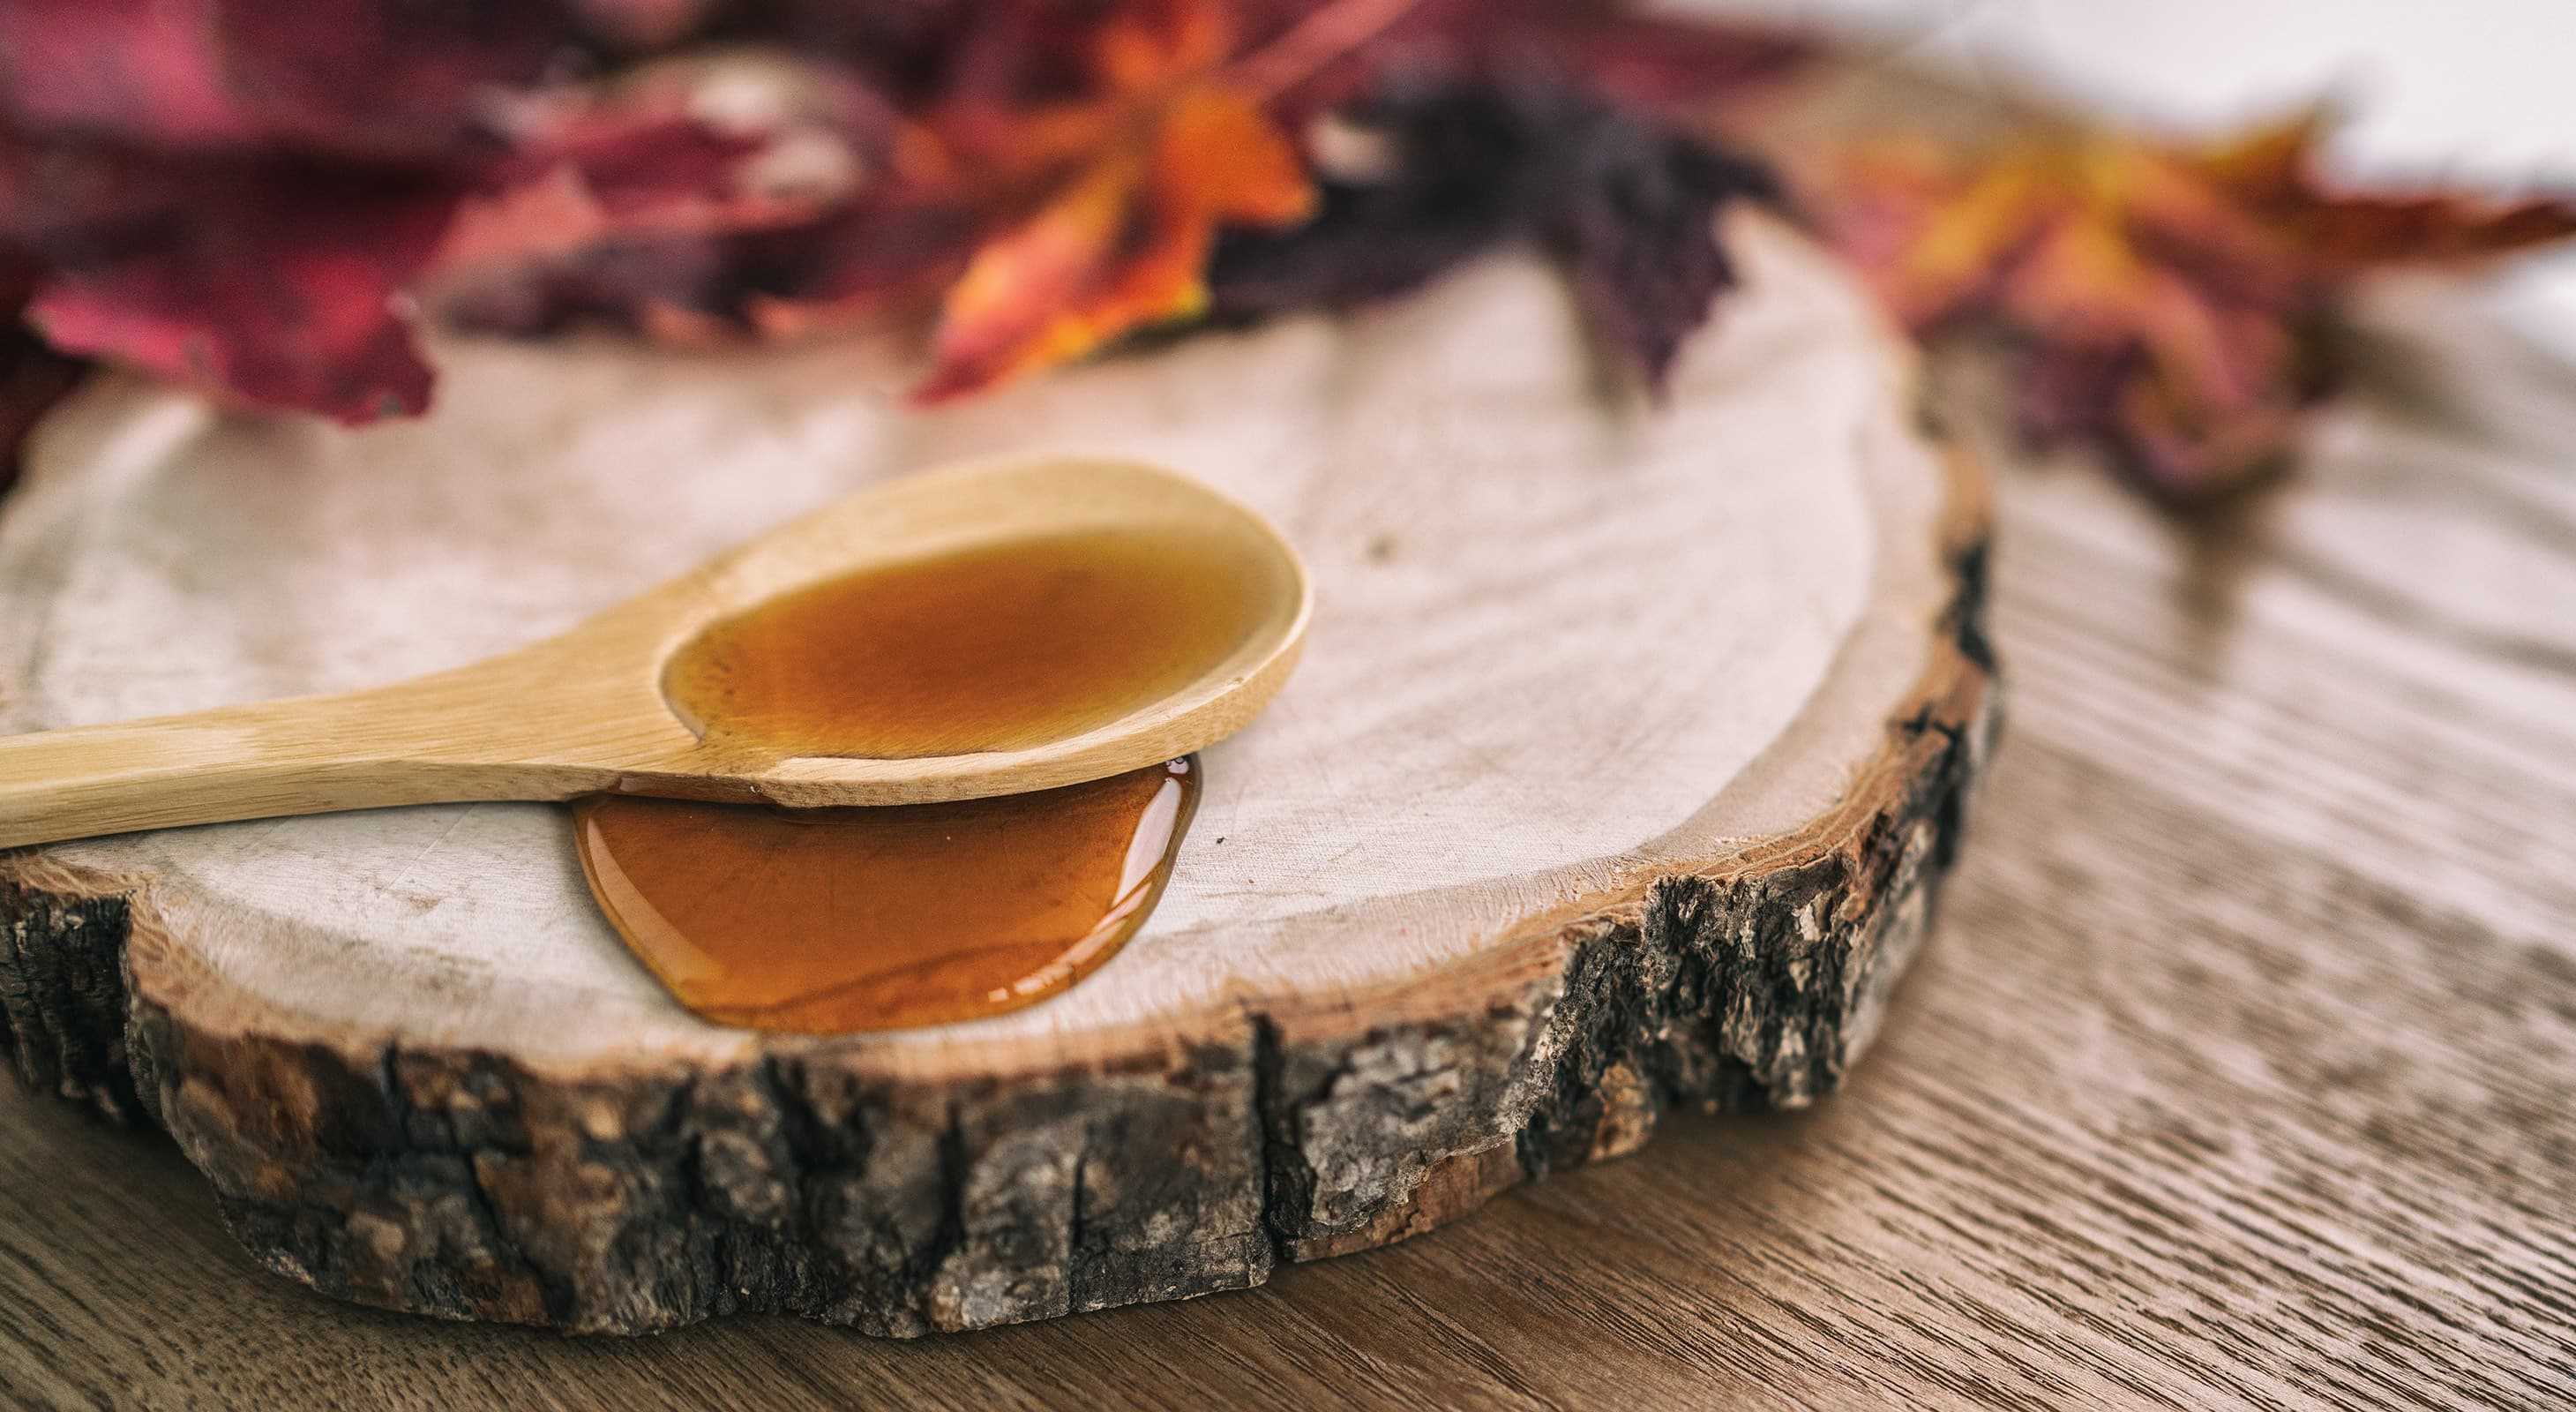 Maple sugar from Maine